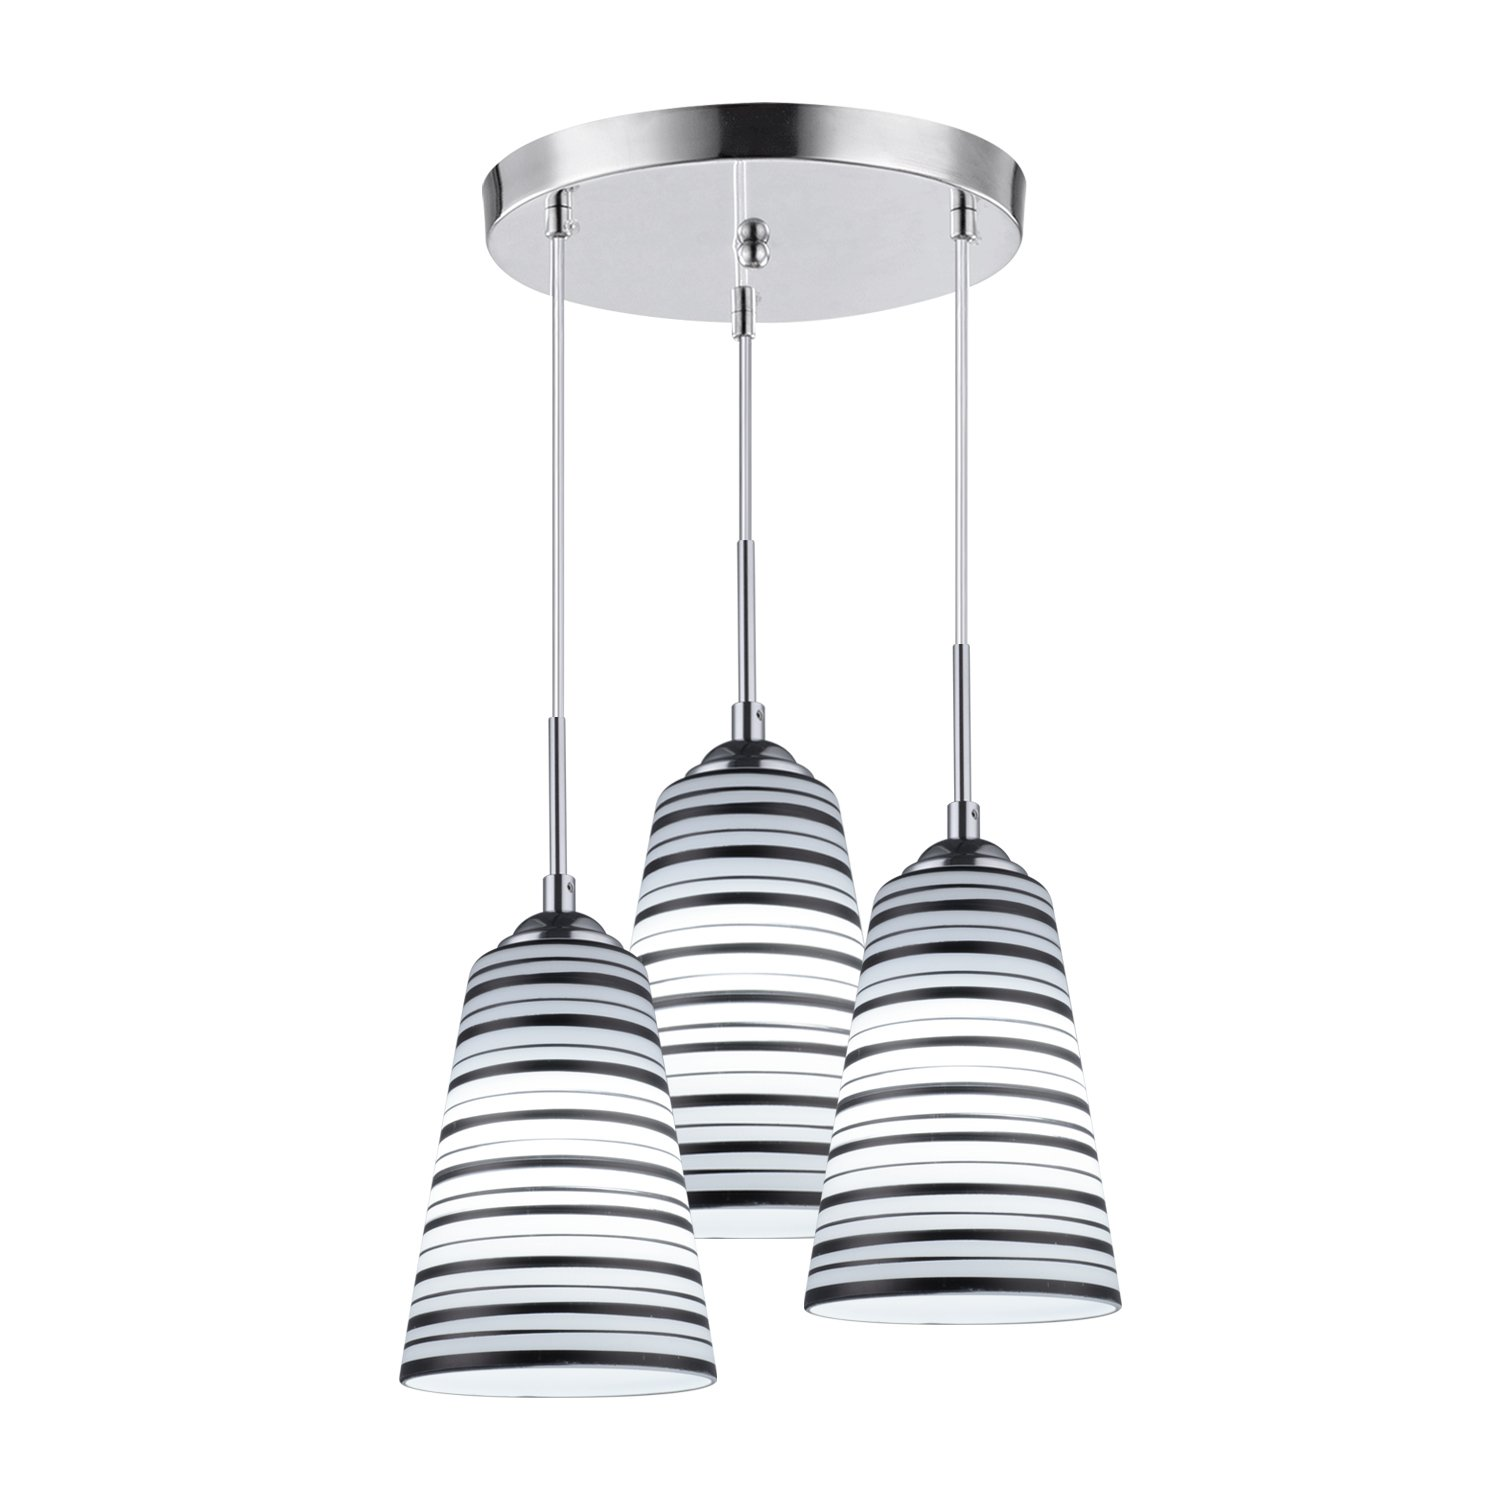 Elitlife Modern Multi-Light Pendant Light With 3-light 3x5W Bulb Elegant Chandelier Hanging Light Ceiling light Stripe Glass Shades for Restaurant,Kitchen,Living room,Cafe, Hotel (White)